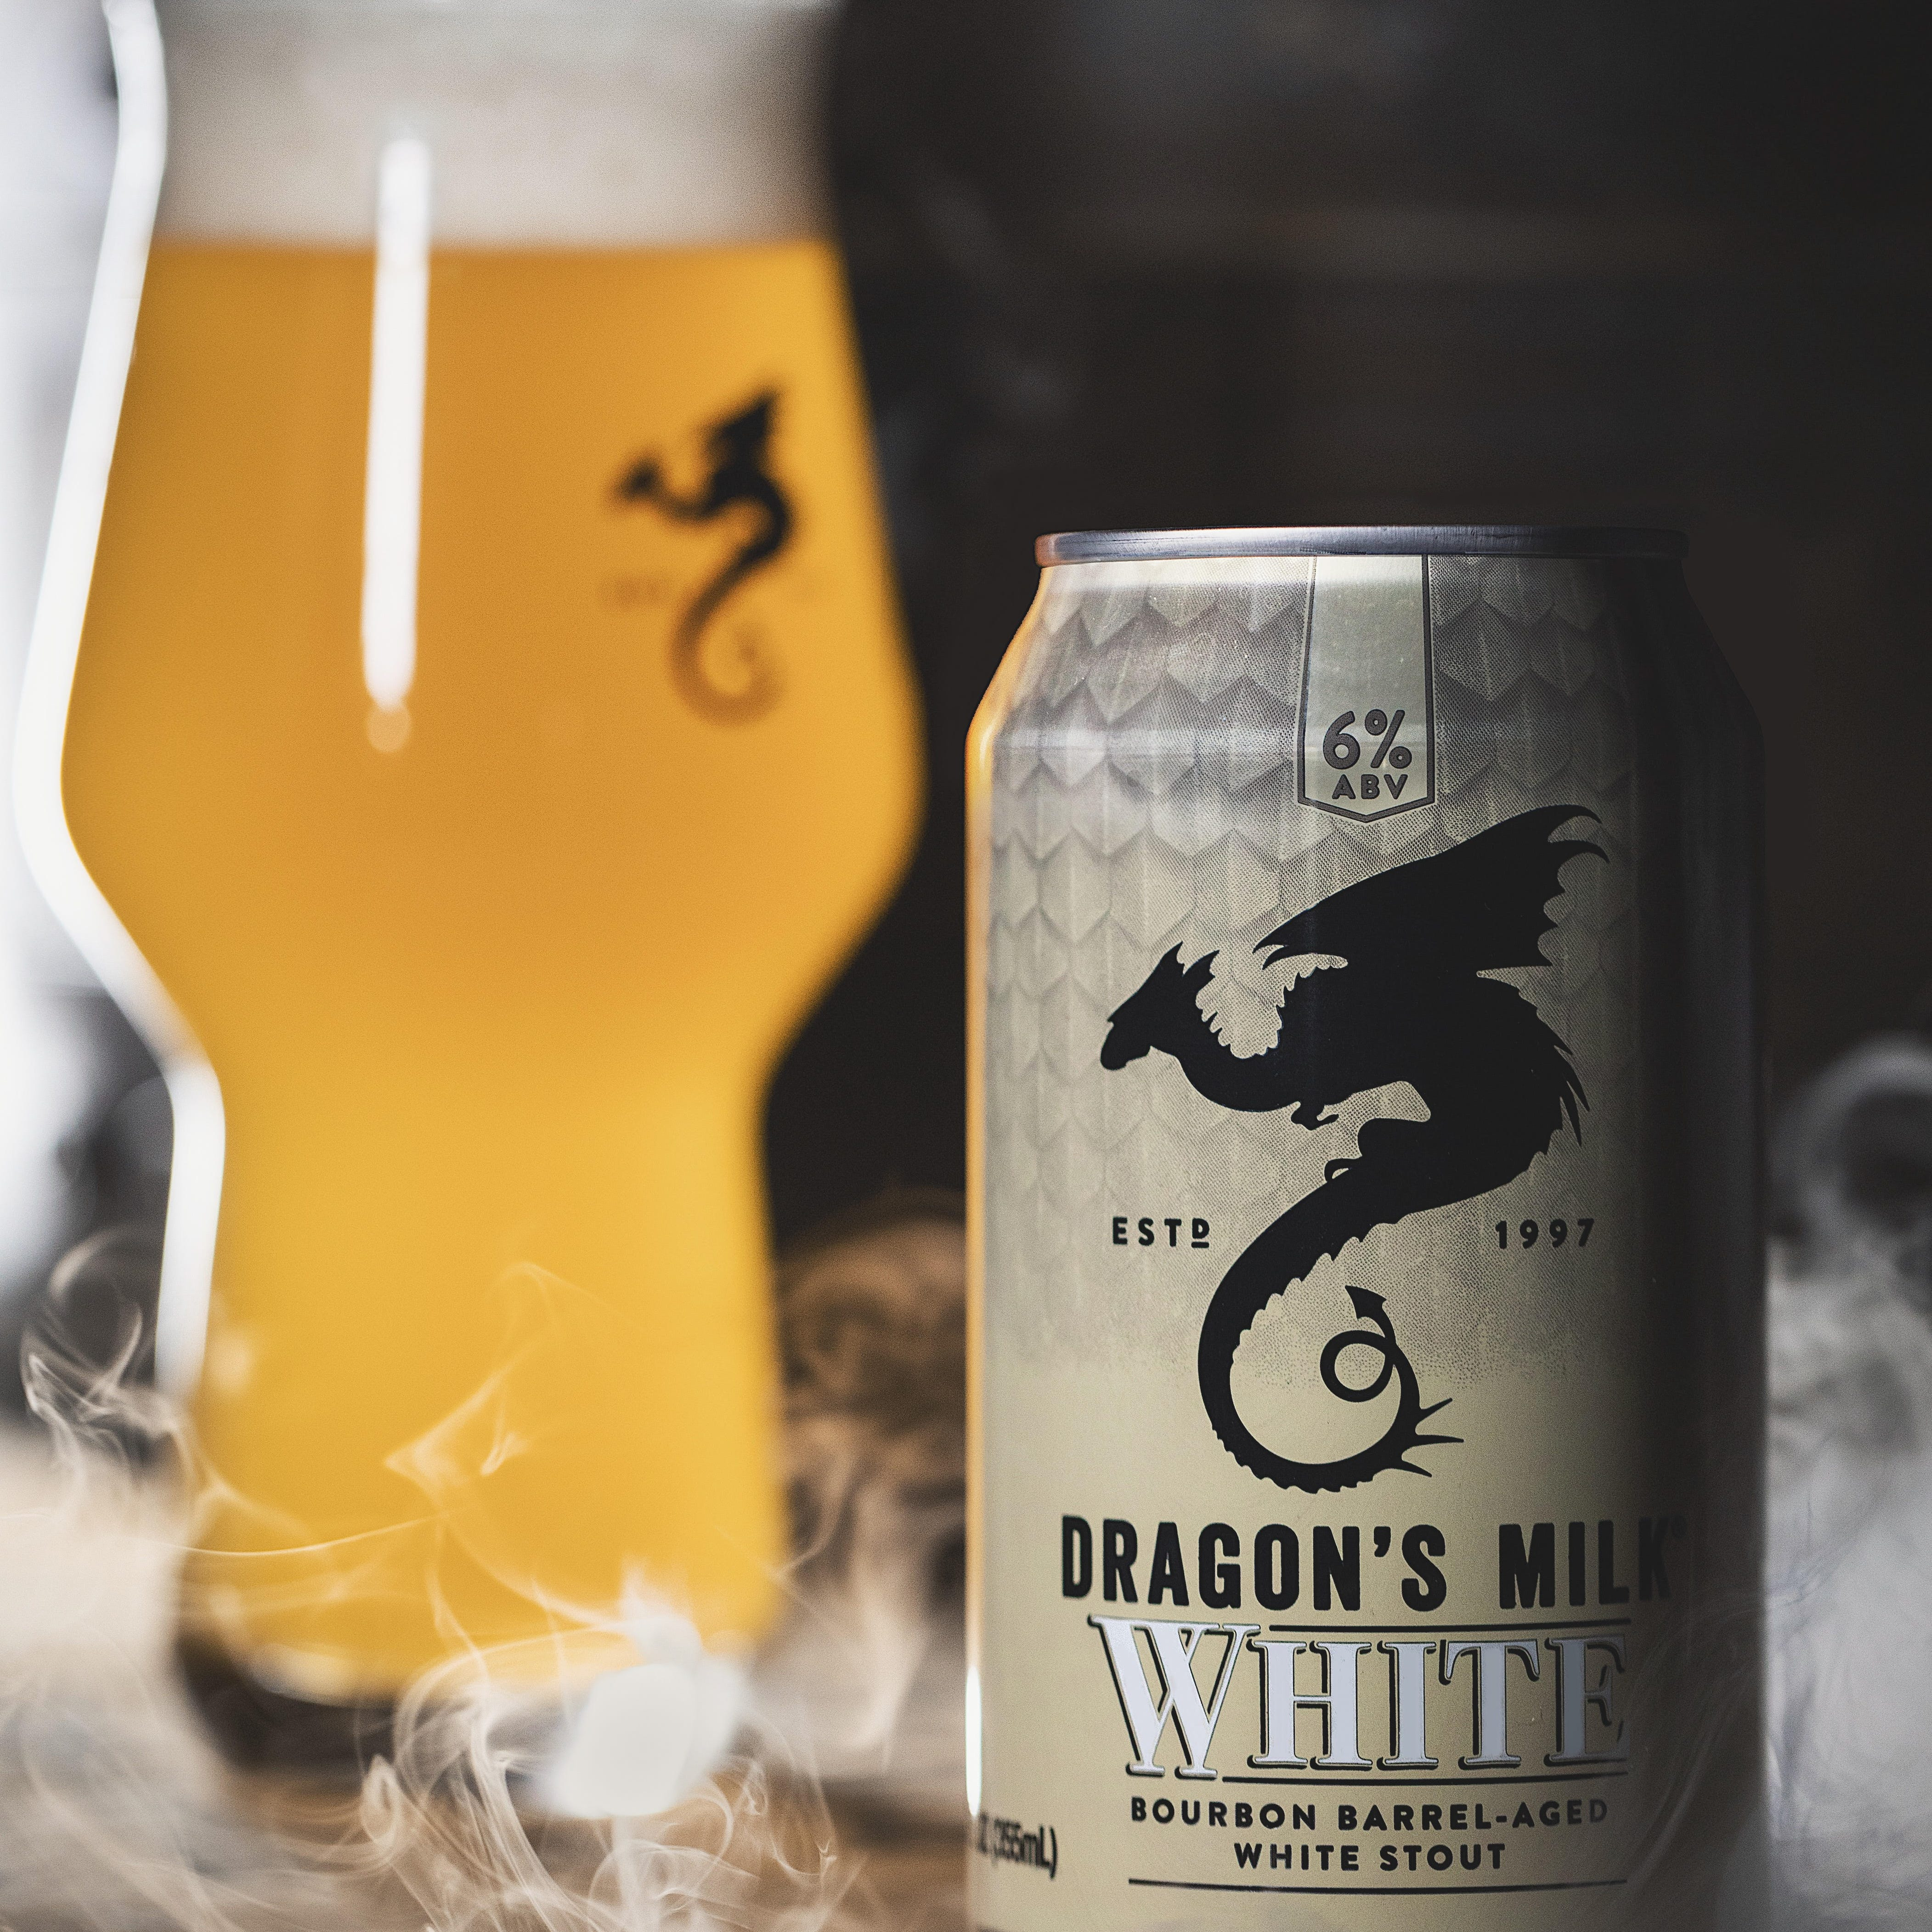 New Holland unveils Dragon's Milk White stout, at 6% ABV